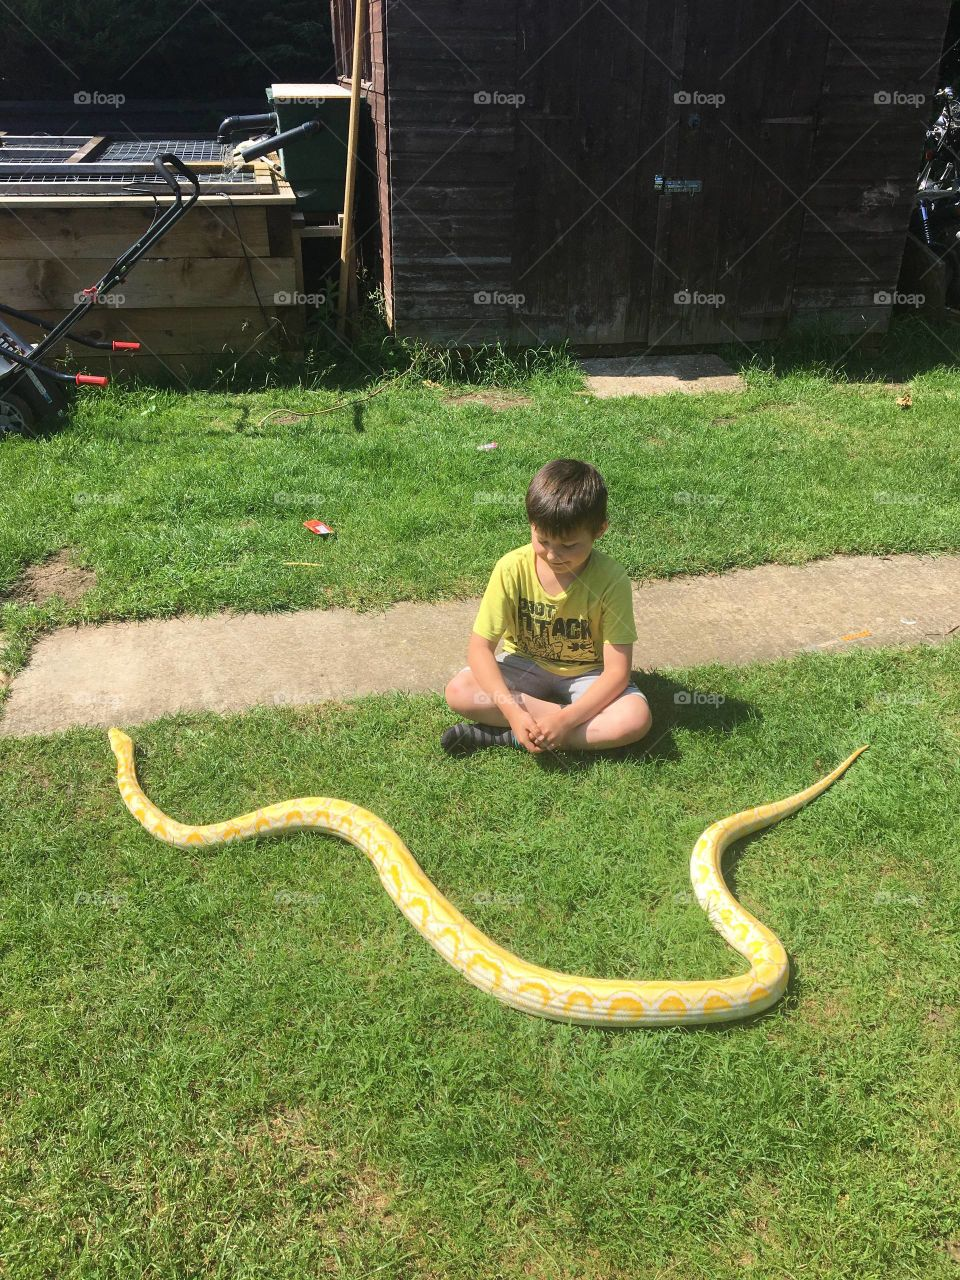 Snake and child